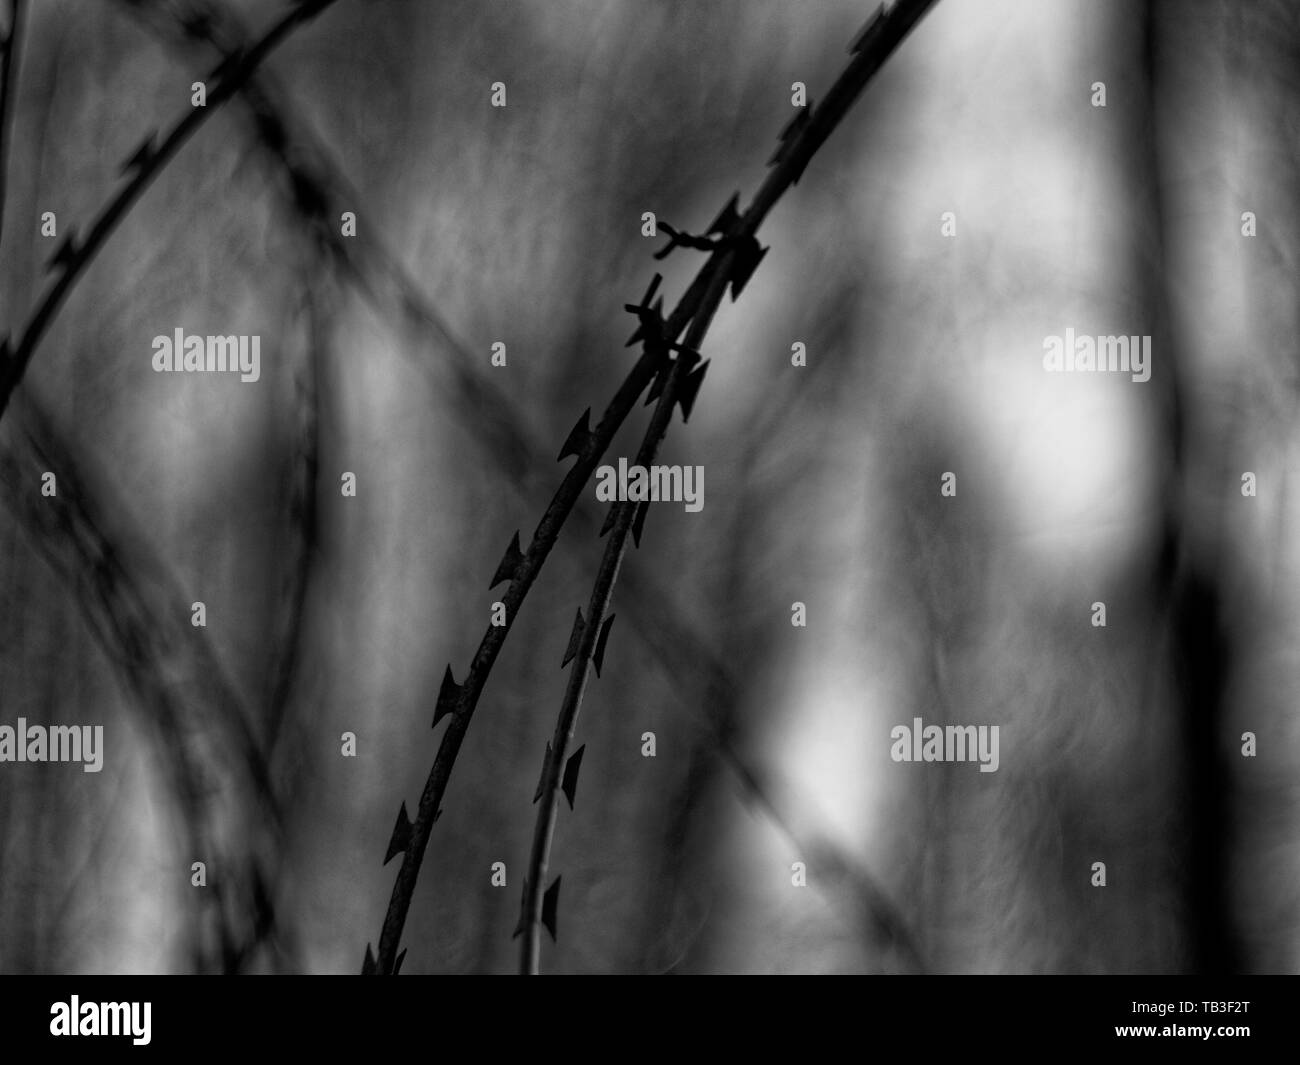 barbed wire against a cloudy sky, Moscow - Stock Image